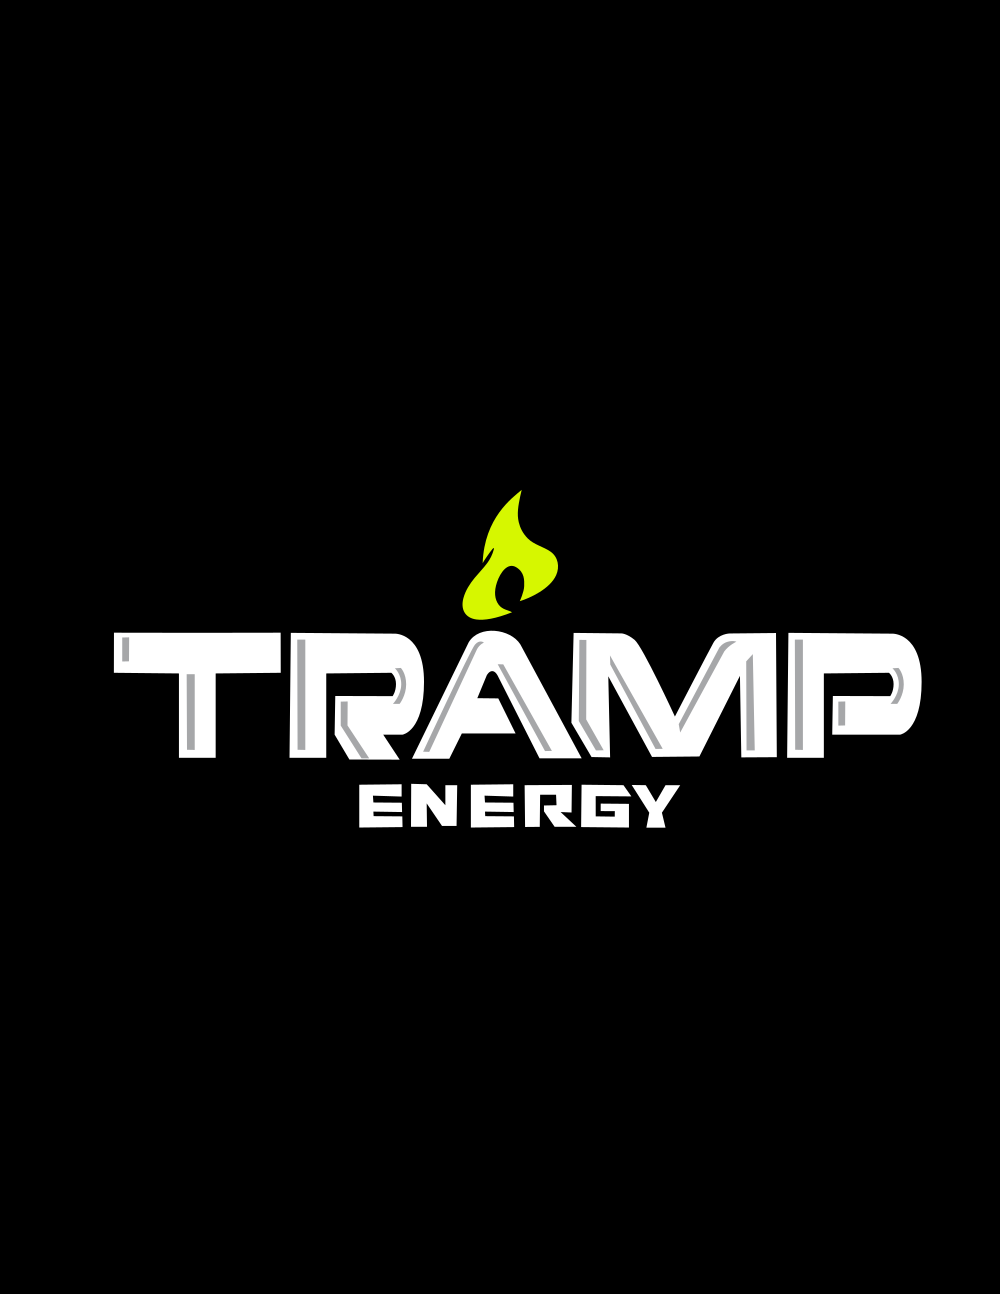 Amp energy drink Typography design TWO!!!!